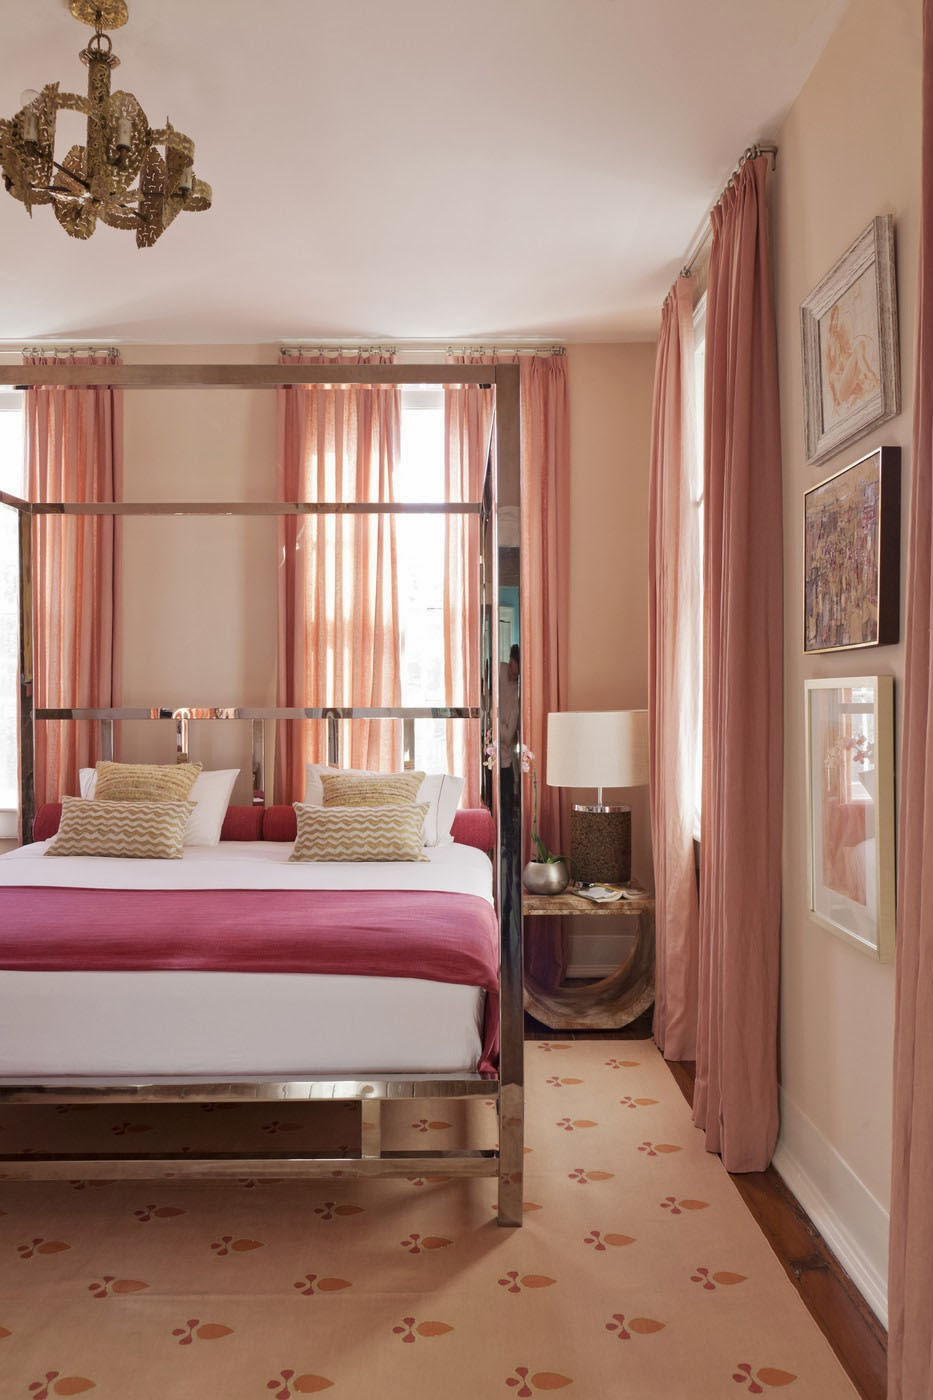 Best ideas about Bedroom Color Schemes . Save or Pin 10 Calming Bedrooms with Analogous Color Schemes Now.